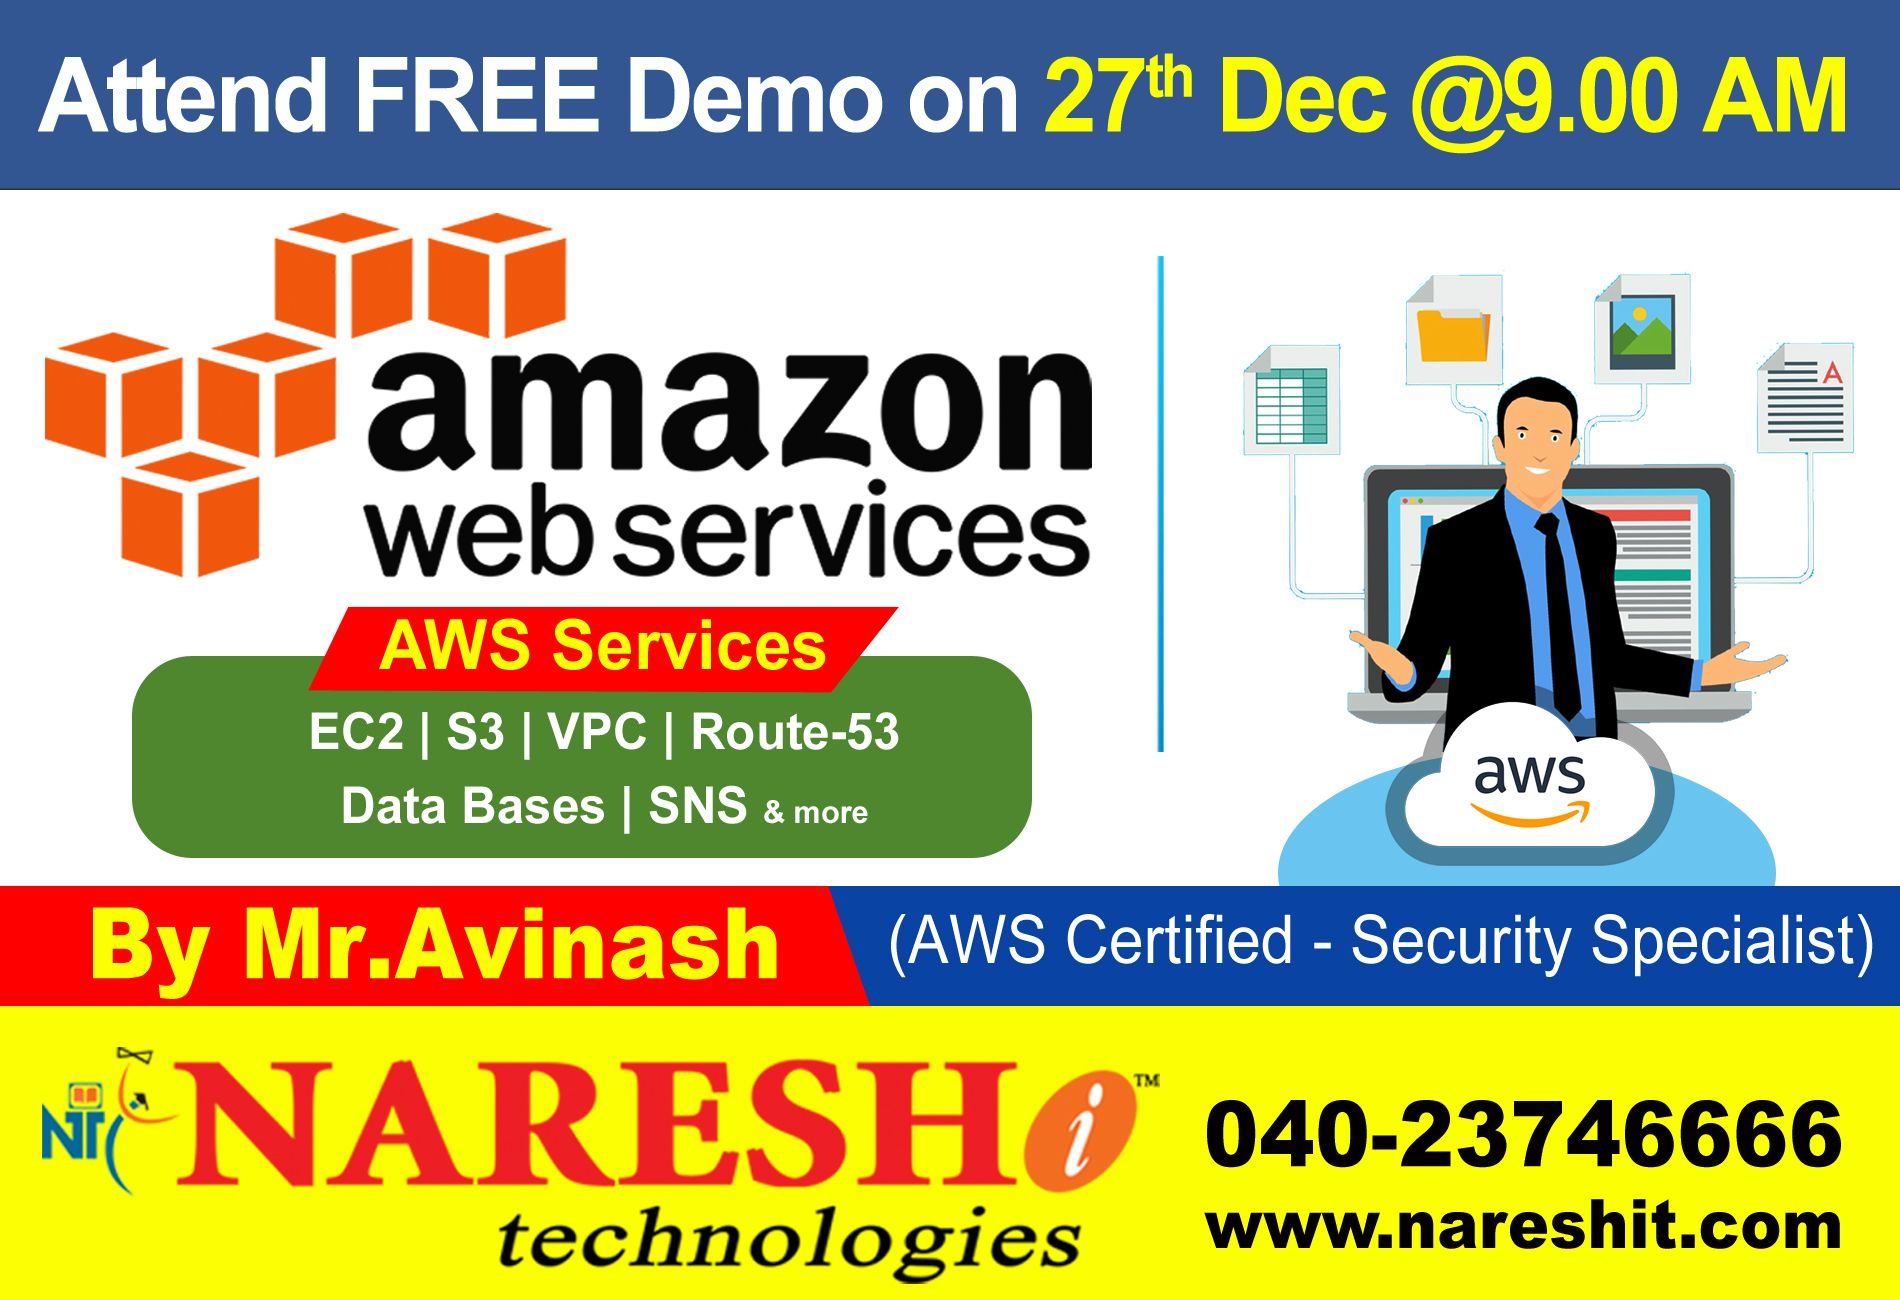 Attend Free Demo On AWS On 27th Dec 900 AM by Mr